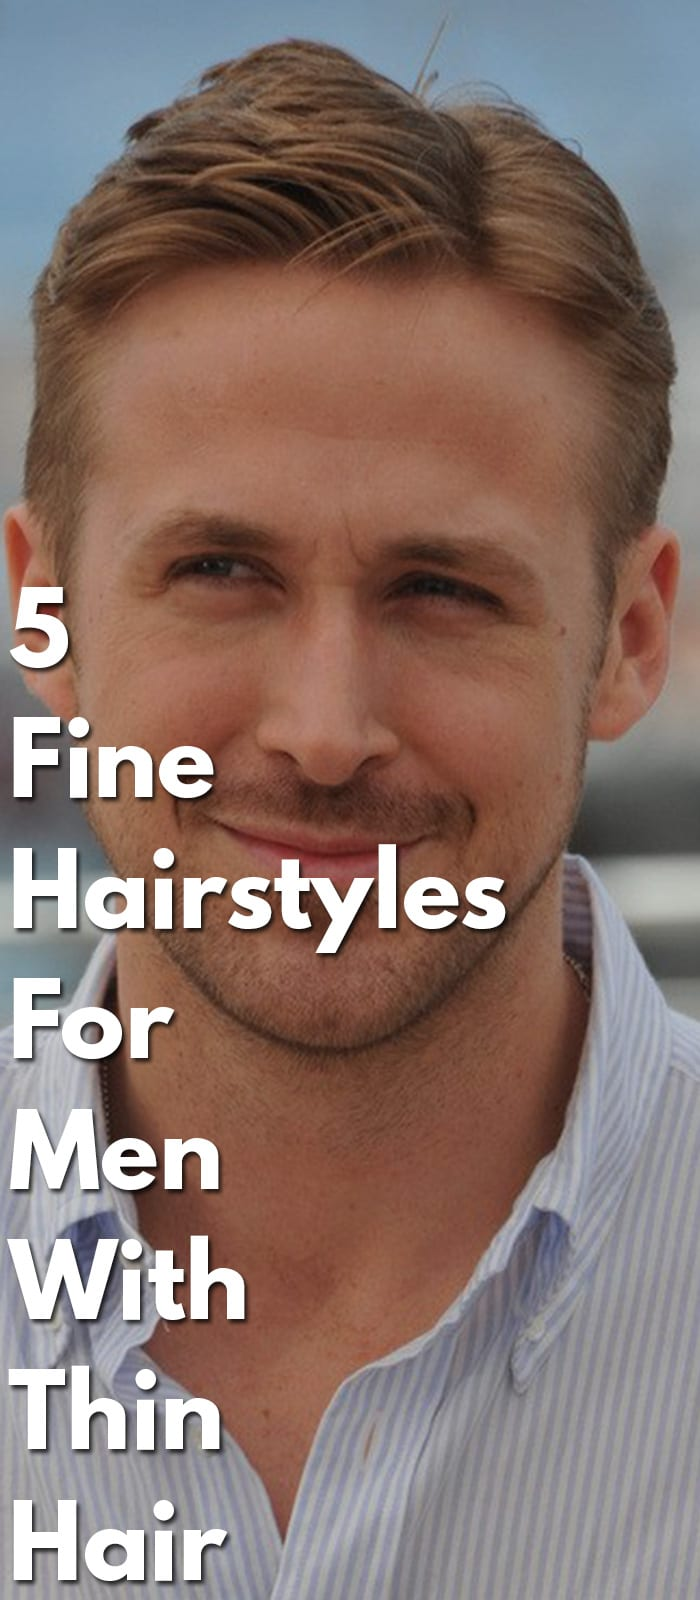 5-Fine-Hairstyles-For-Men-With-Thin-Hair.